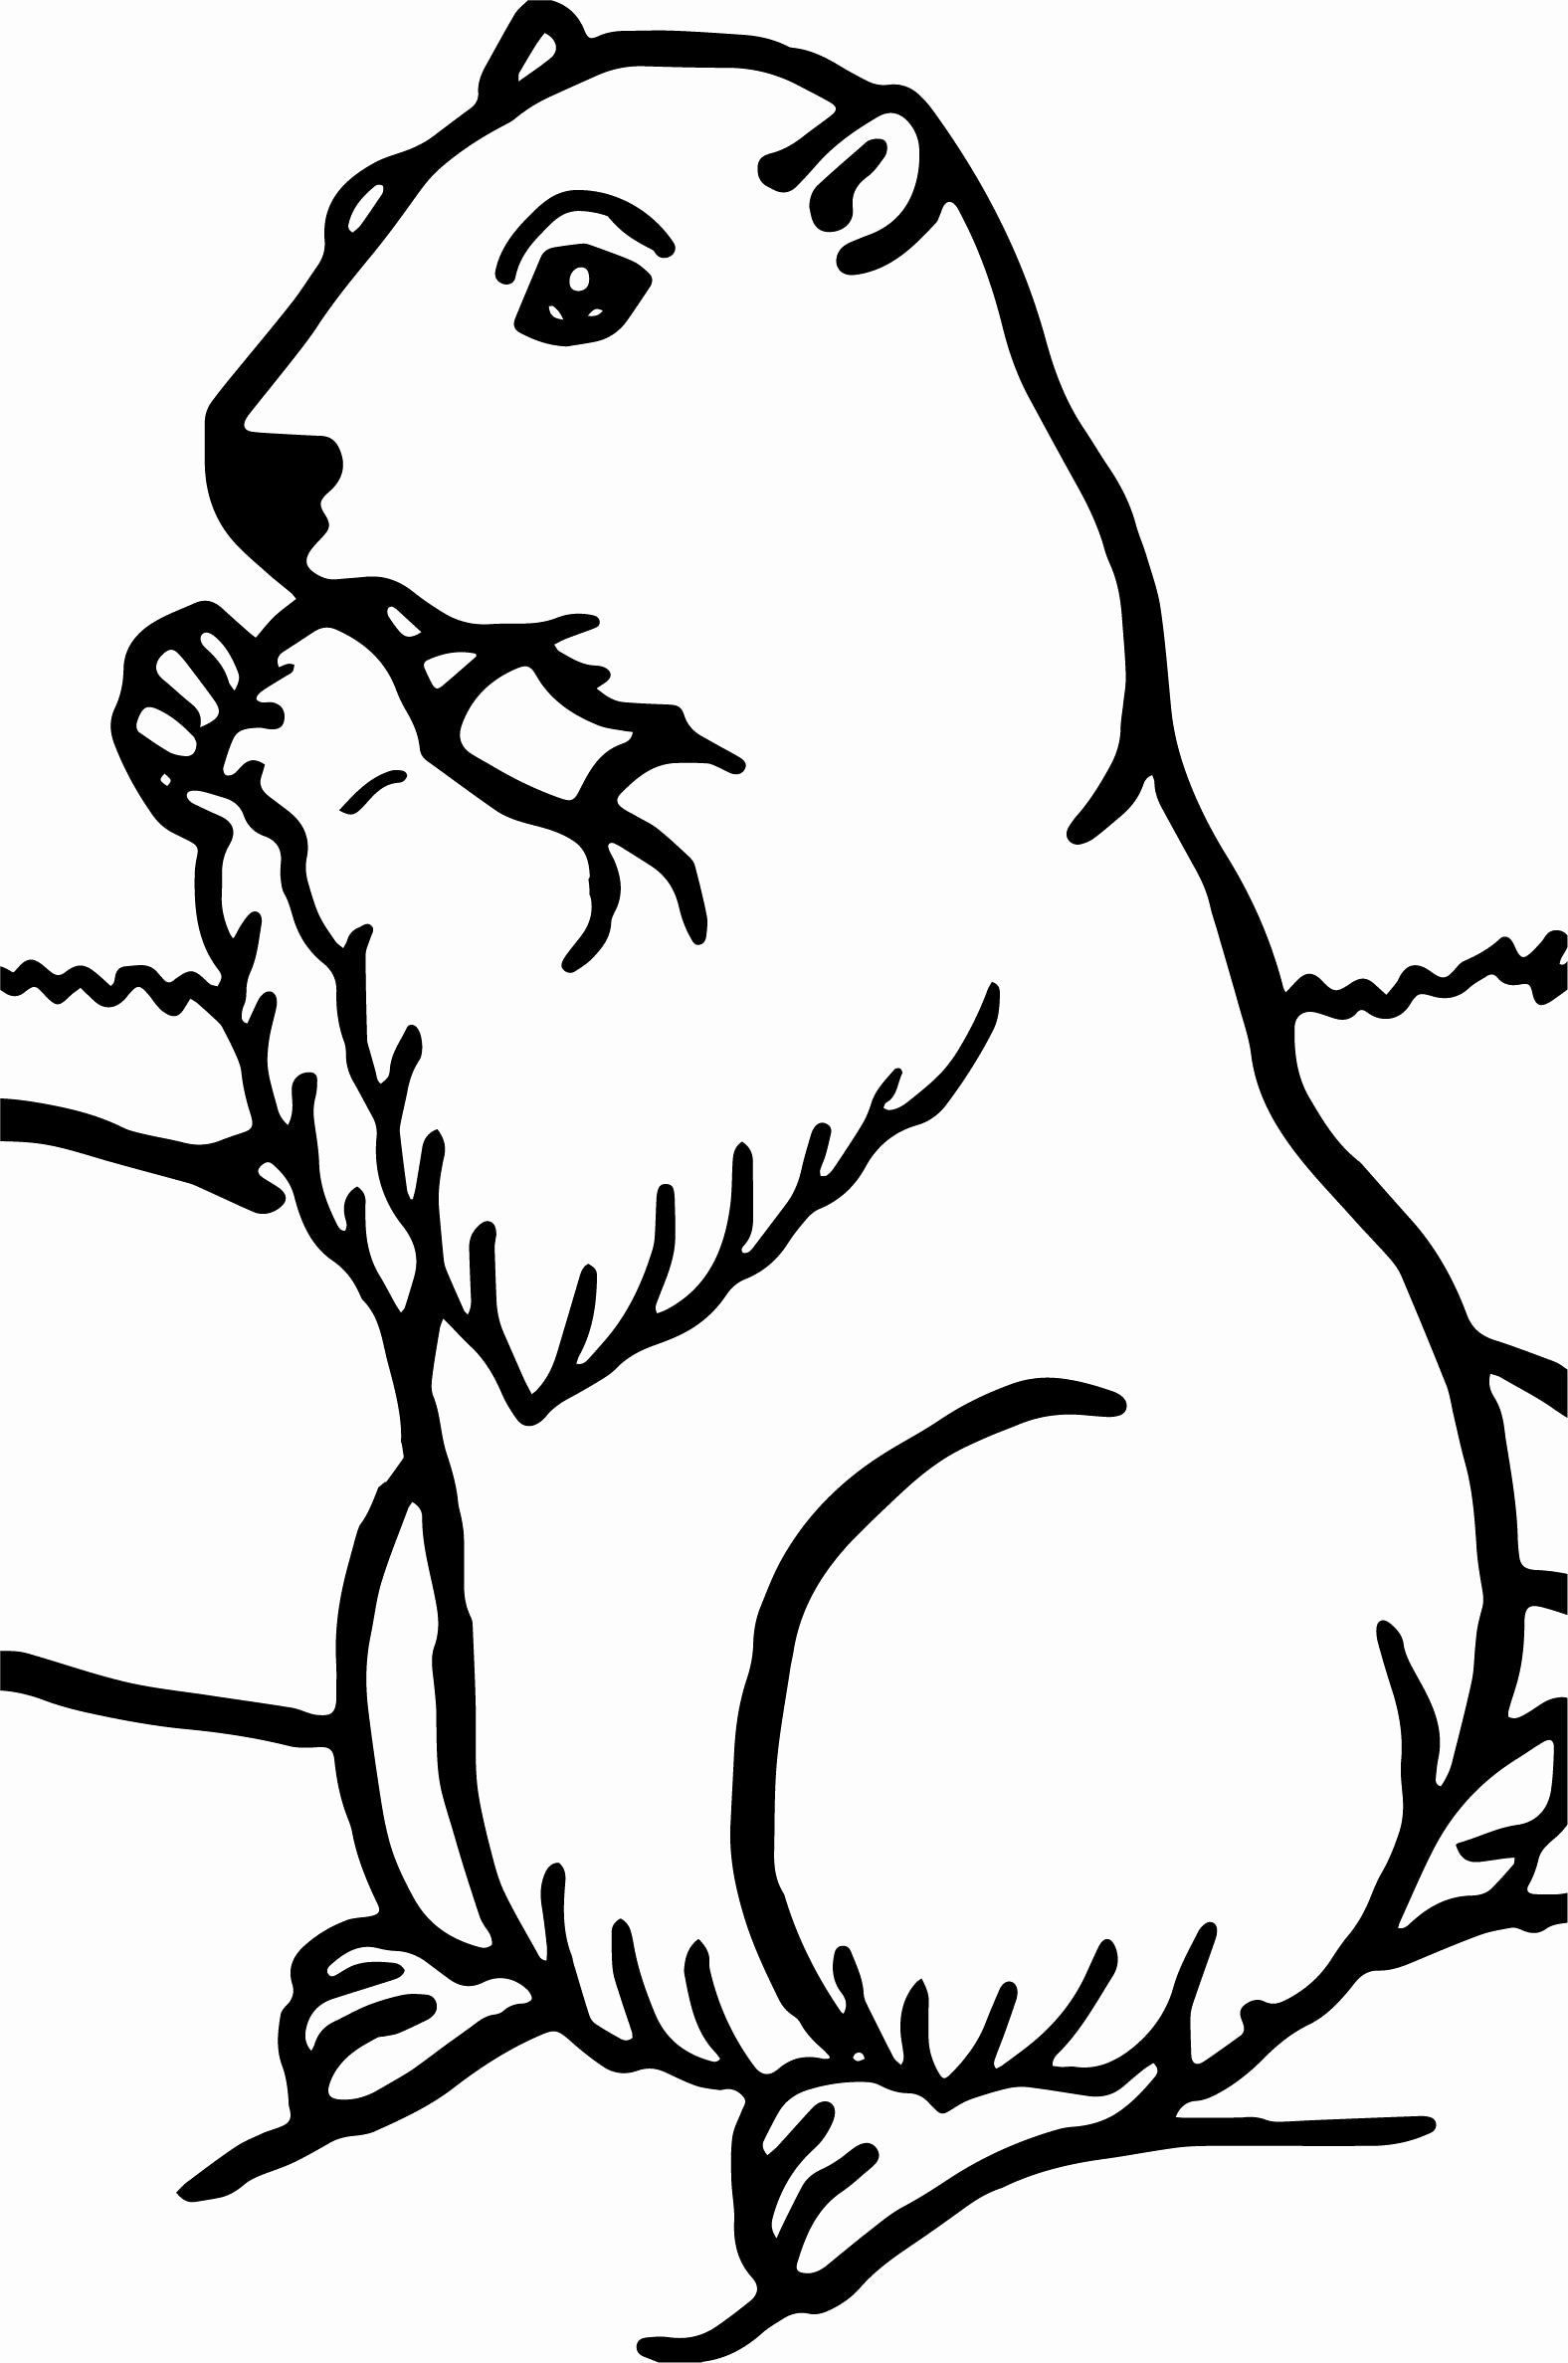 Ground Hog Day Coloring Page Fresh Groundhog Coloring Pages Best Coloring Pages For Kids In 2020 Animal Coloring Pages Coloring Pages Coloring Pages Inspirational